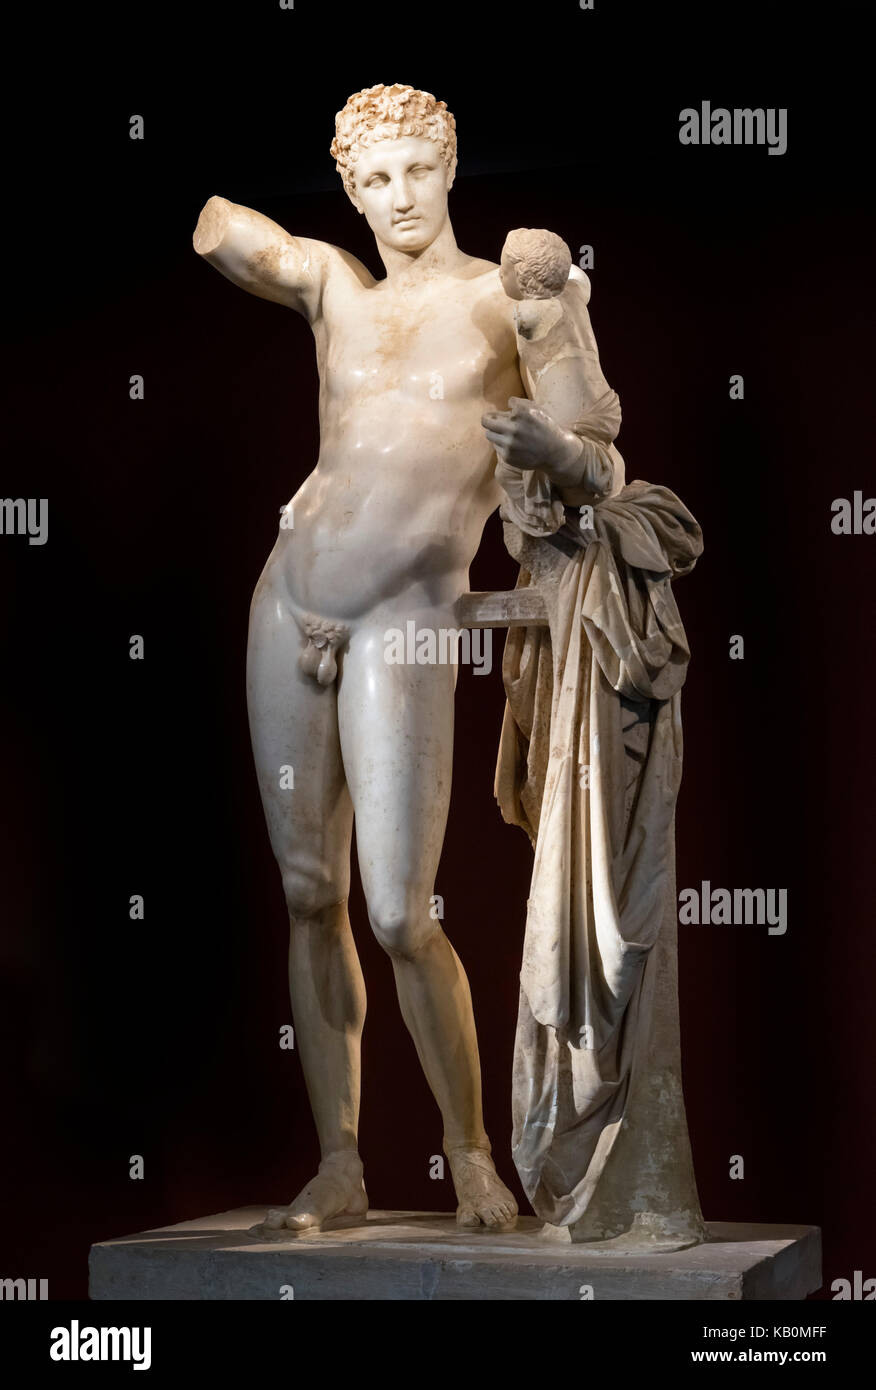 Hermes of Praxiteles sculpture (Hermes and the Infant Dionysus), Olympia, Pelopponese, Greece - Stock Image